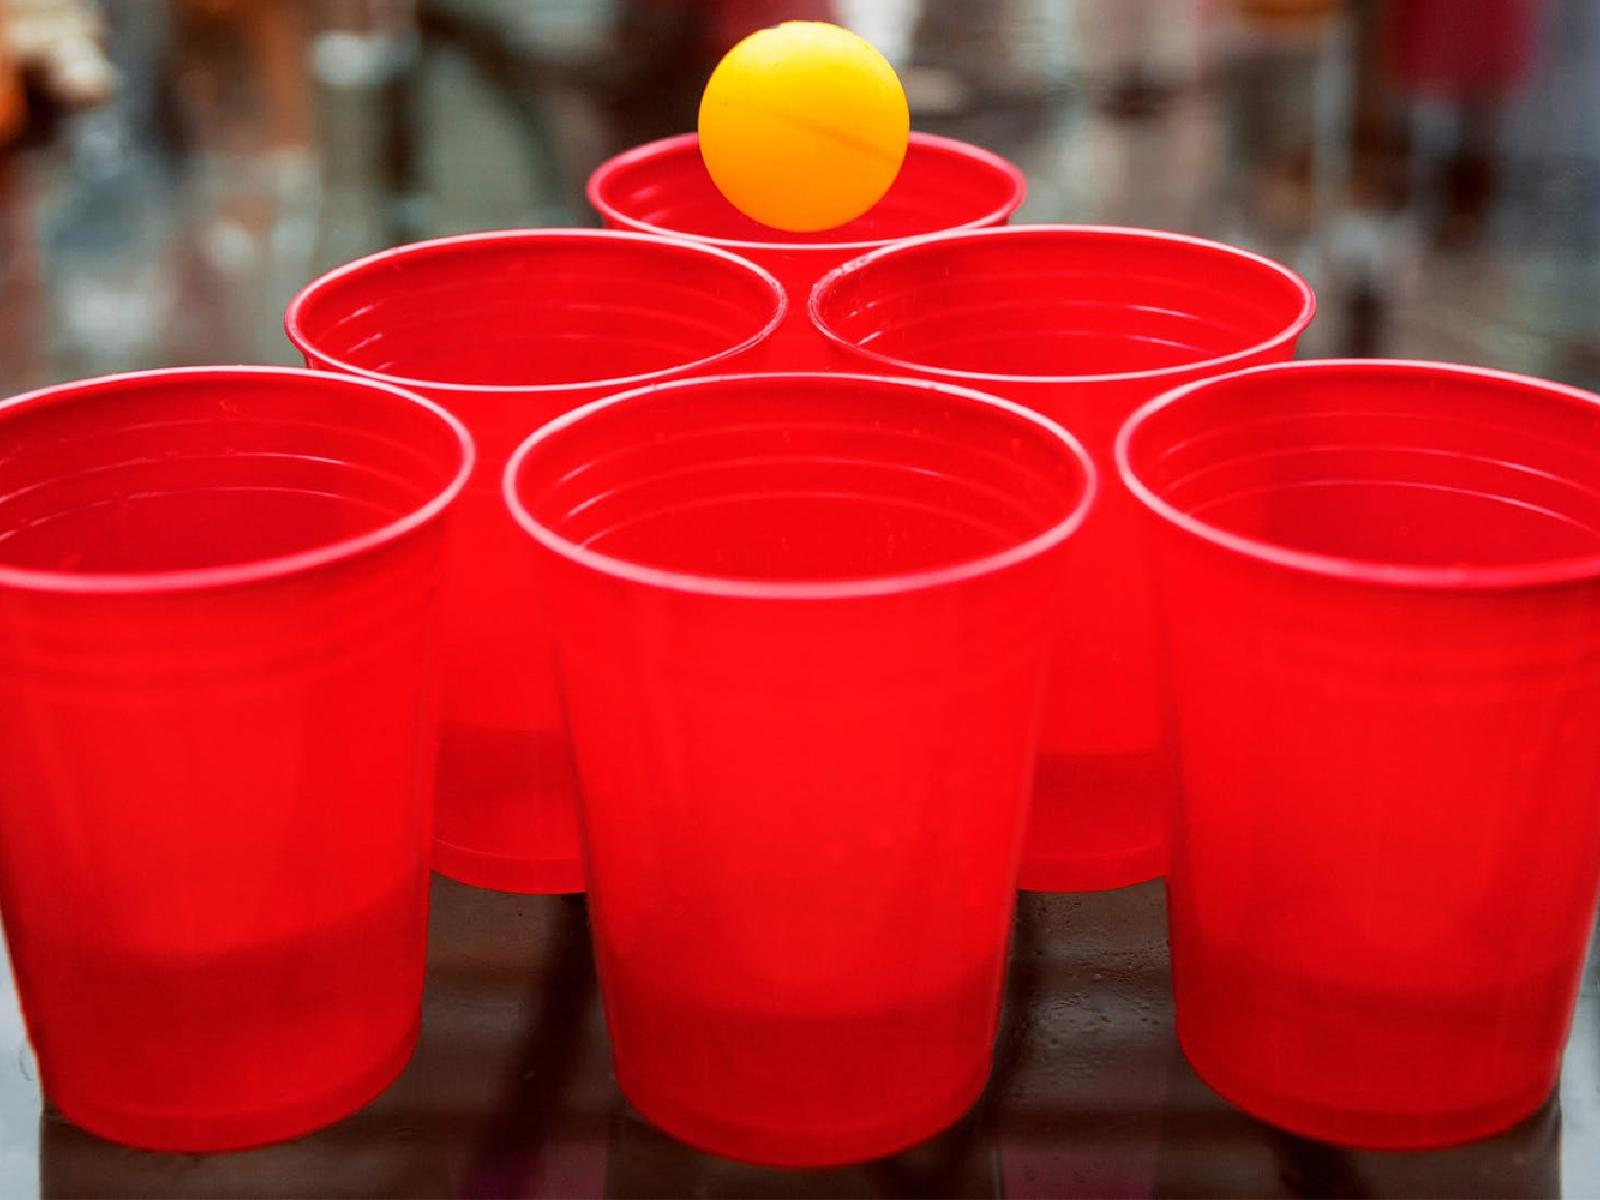 Chandelier Ball Cup Drinking Game Rules And Guide